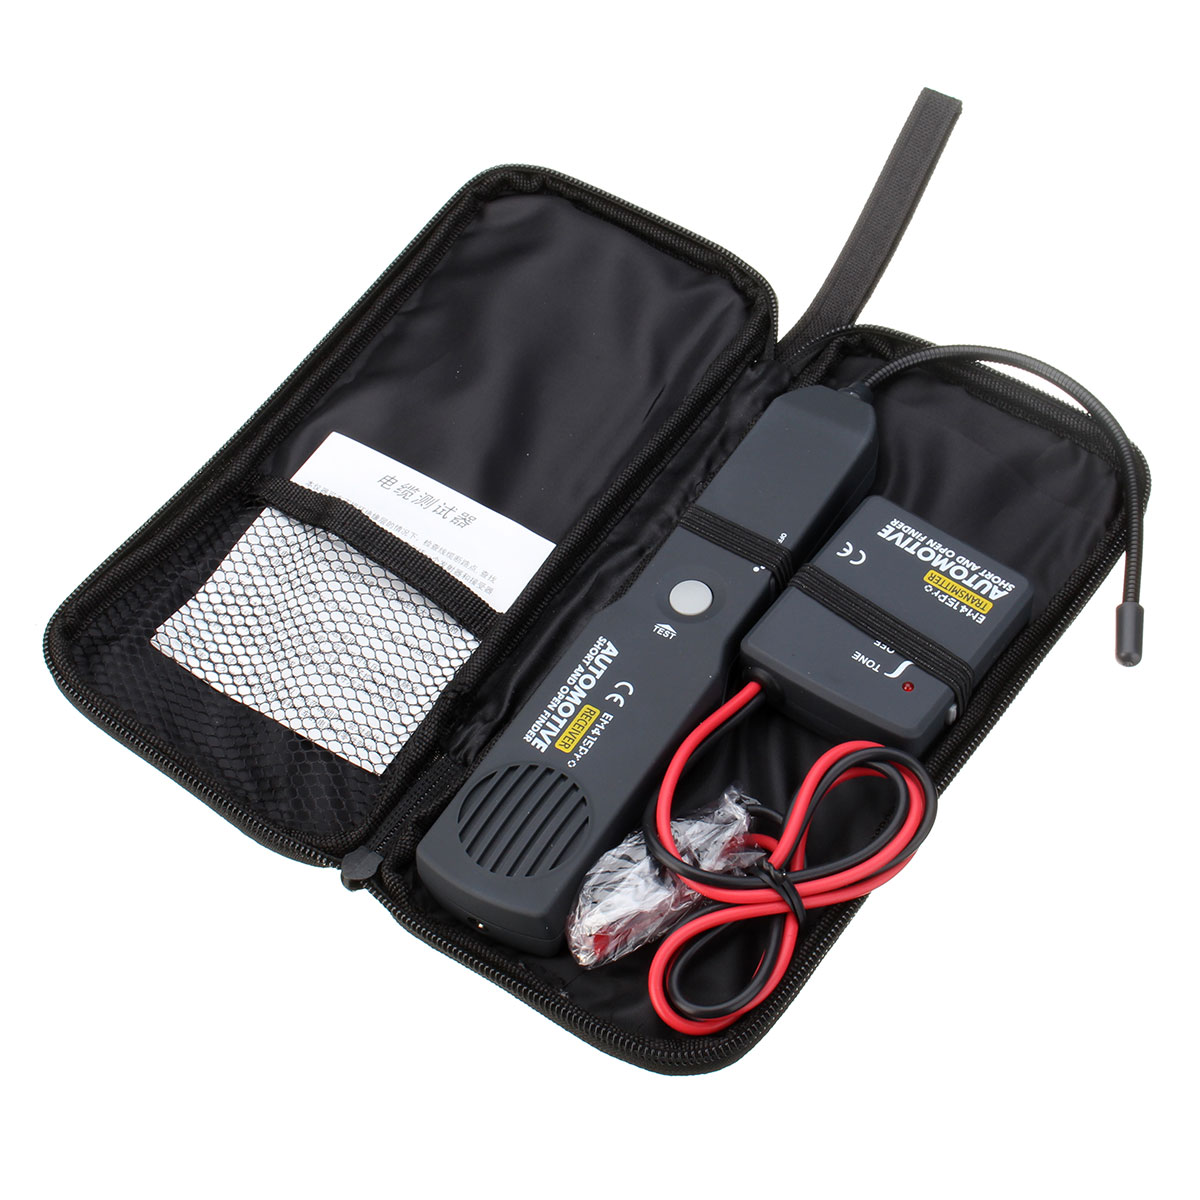 1Set EM415 pro Automotive Cable Wire Short Open Digital Finder Car Repair  Tool Tester Tracer Diagnose Tone-in Electrical Testers & Test Leads from ...